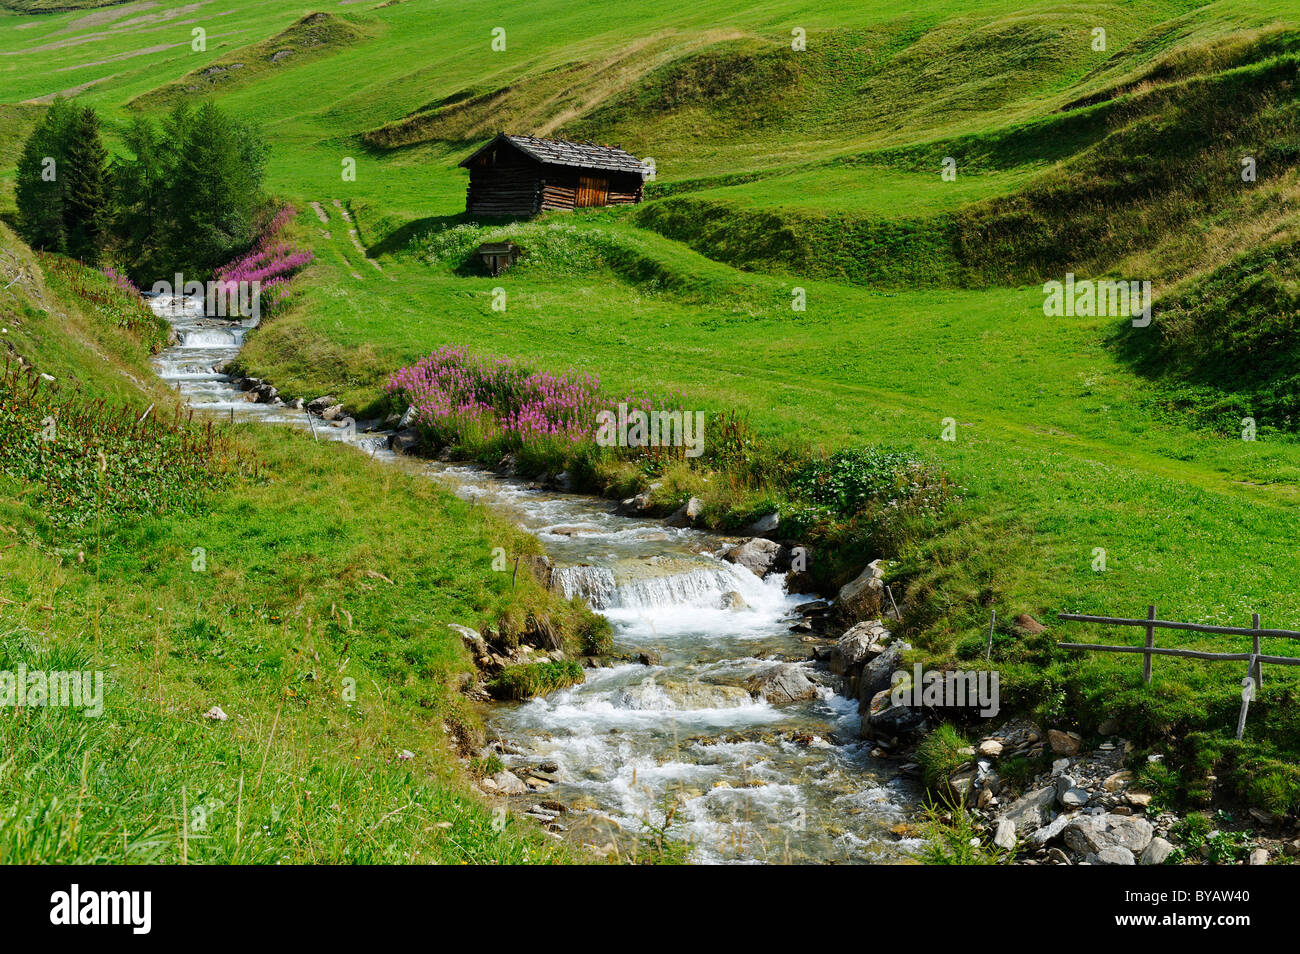 Fanealm, Fane Alm, with Valser Bach stream, Vals Valley, Puster Valley, Pfunderer Mountains, Alto Adige, Italy, Europe Stock Photo